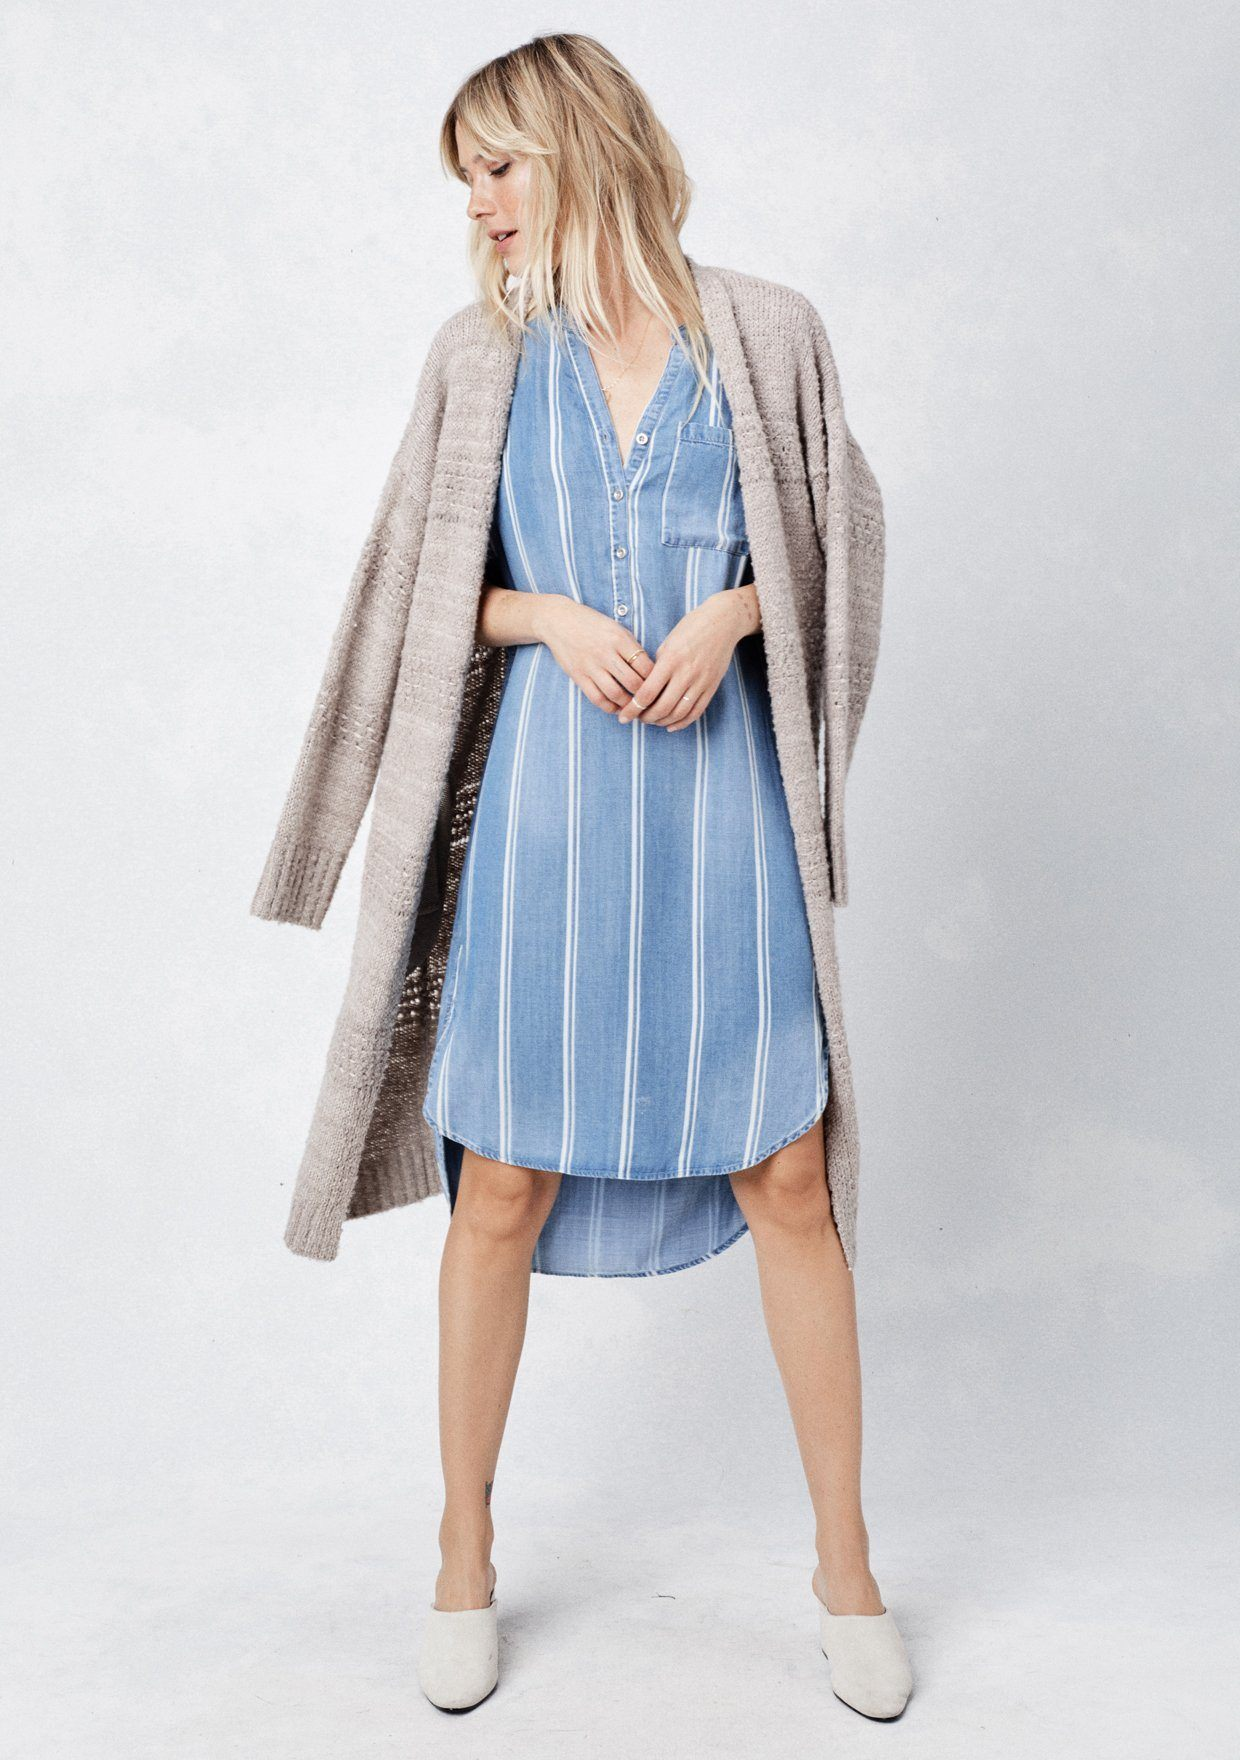 ad6ae7bee8 ... Striped Shirt Dress.  Color  Blue White Stripe  ·  Color  Blue White  Stripe  ...